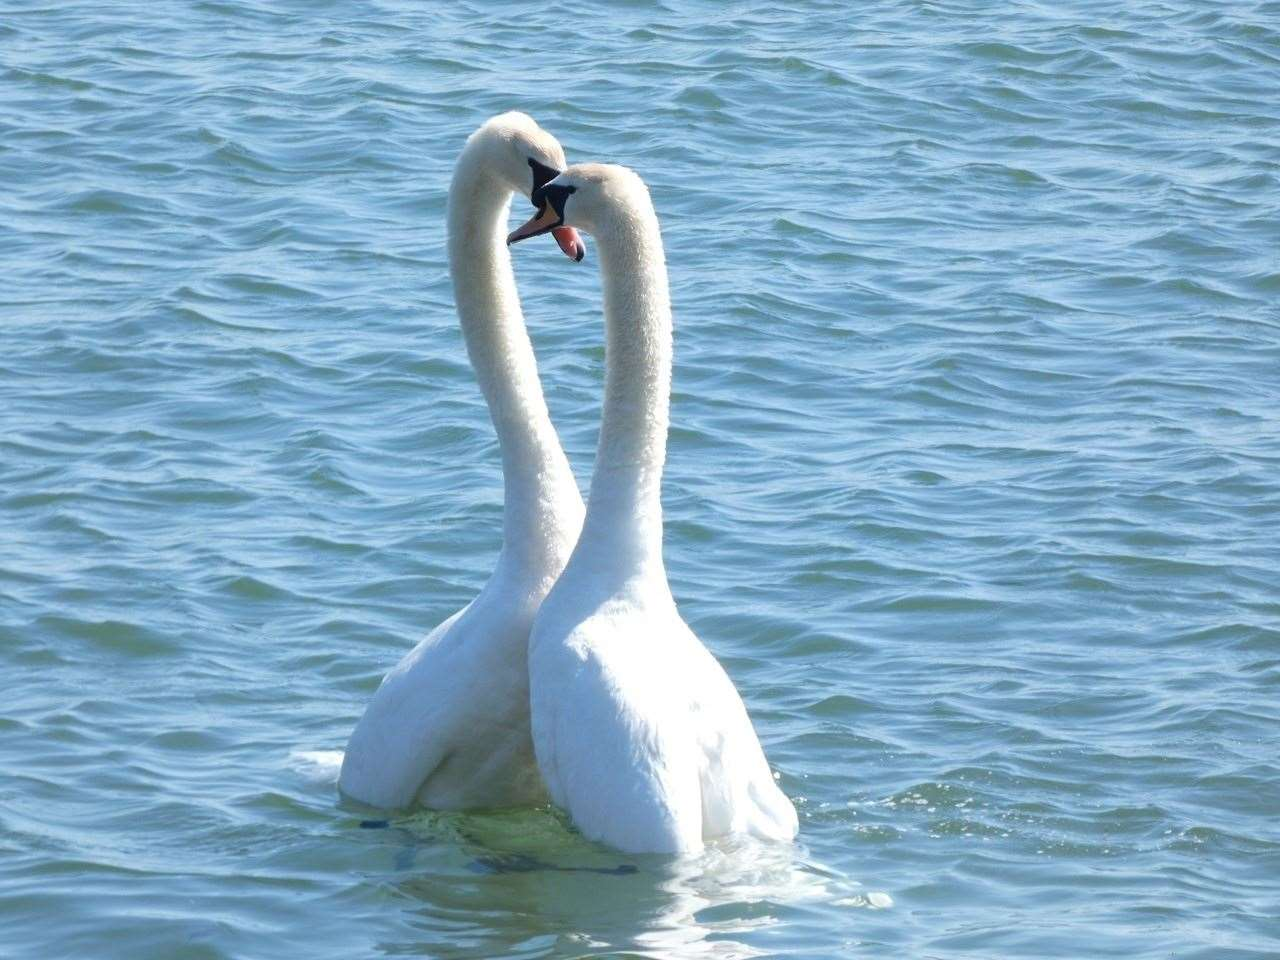 7th May 2021: Emma Denley spotted these amorous swans at Mudeford